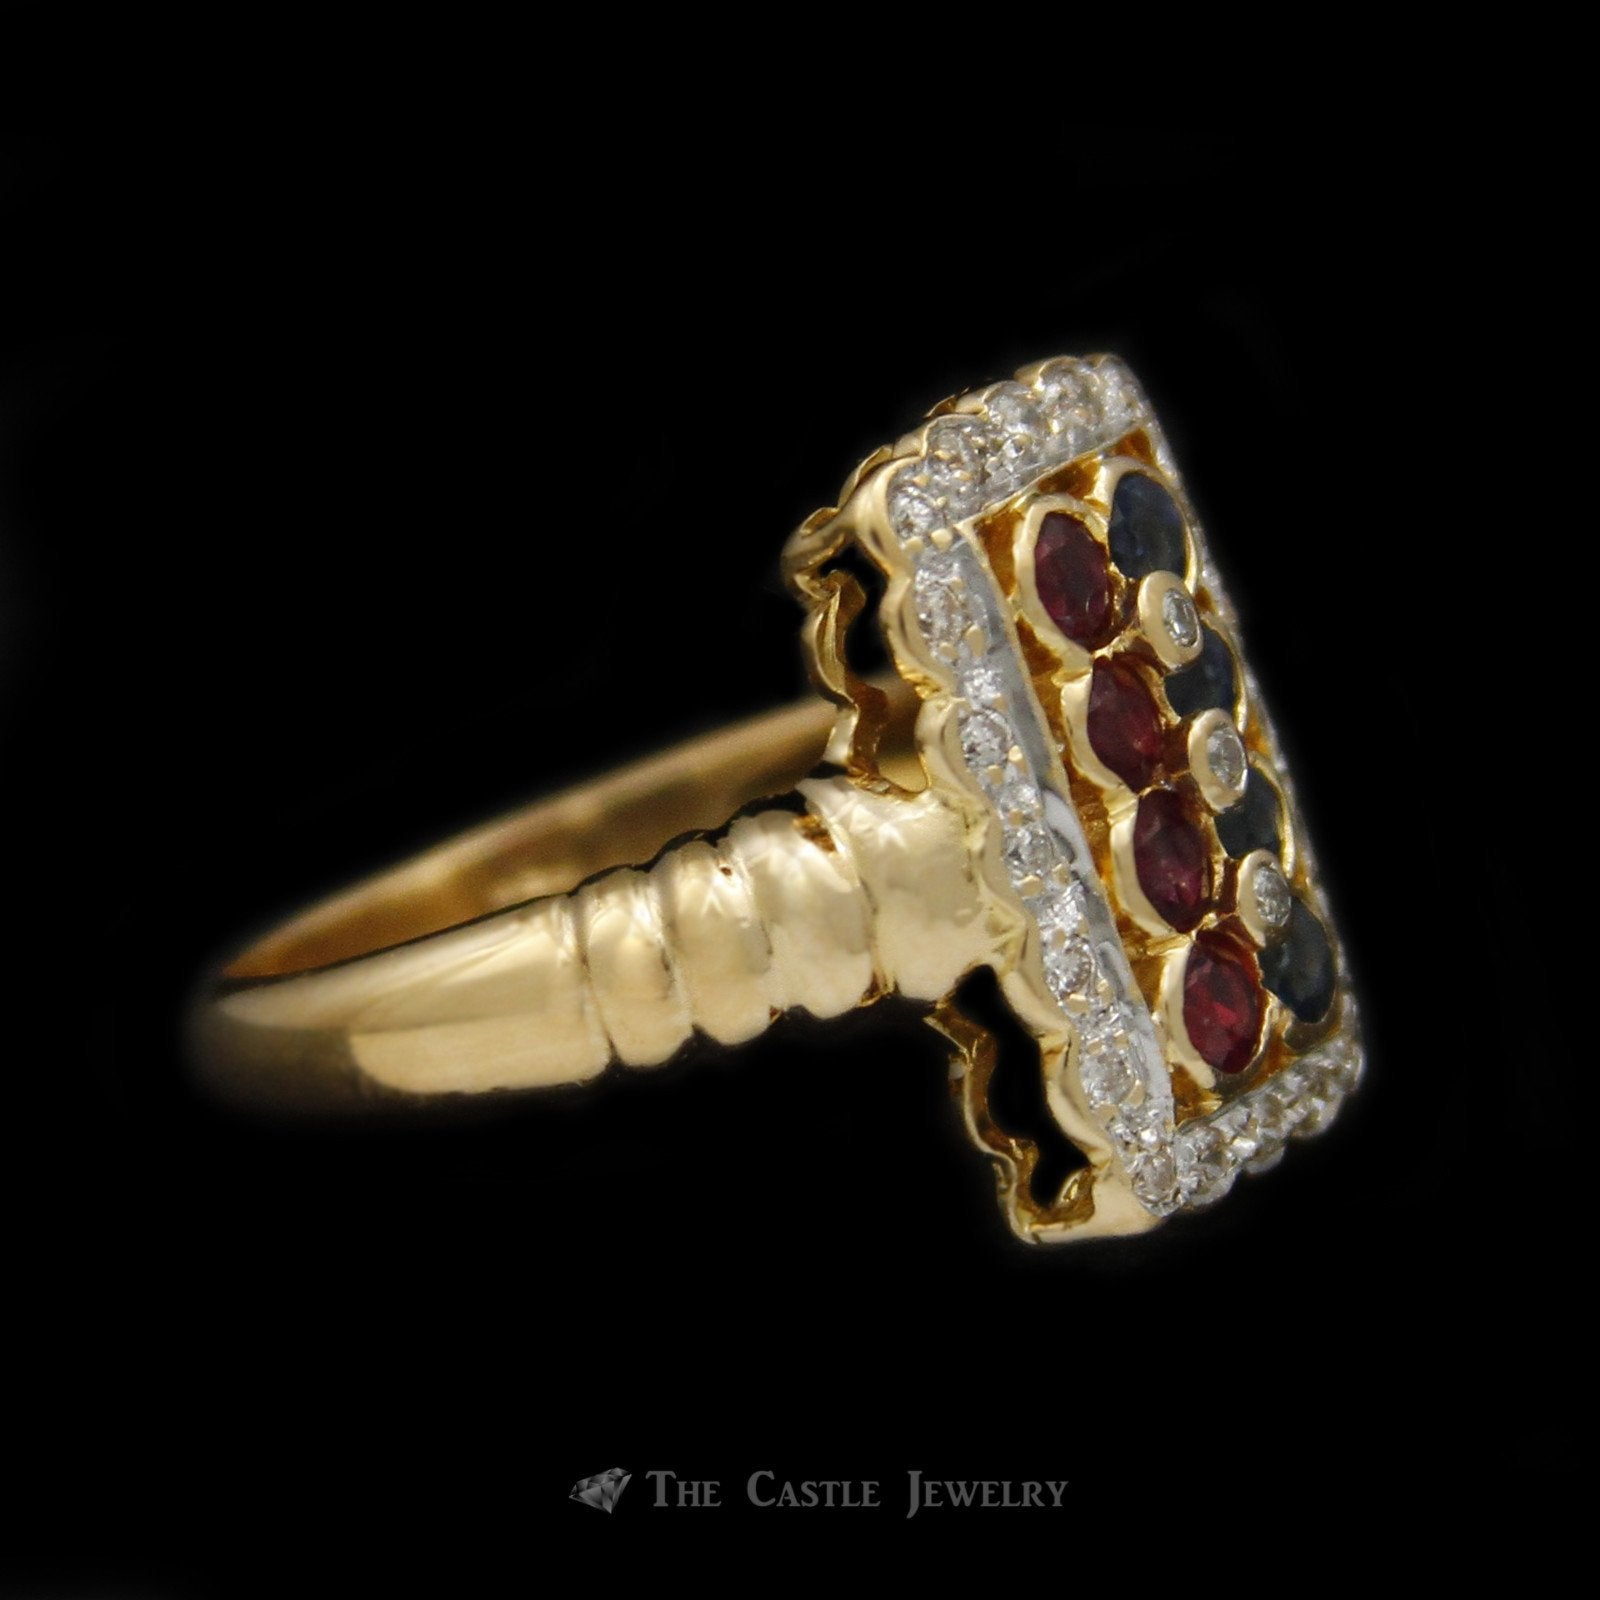 Rectangular Shaped Ruby & Sapphire Ring with Scalloped Design Diamond Bezel in 18K Yellow Gold-2